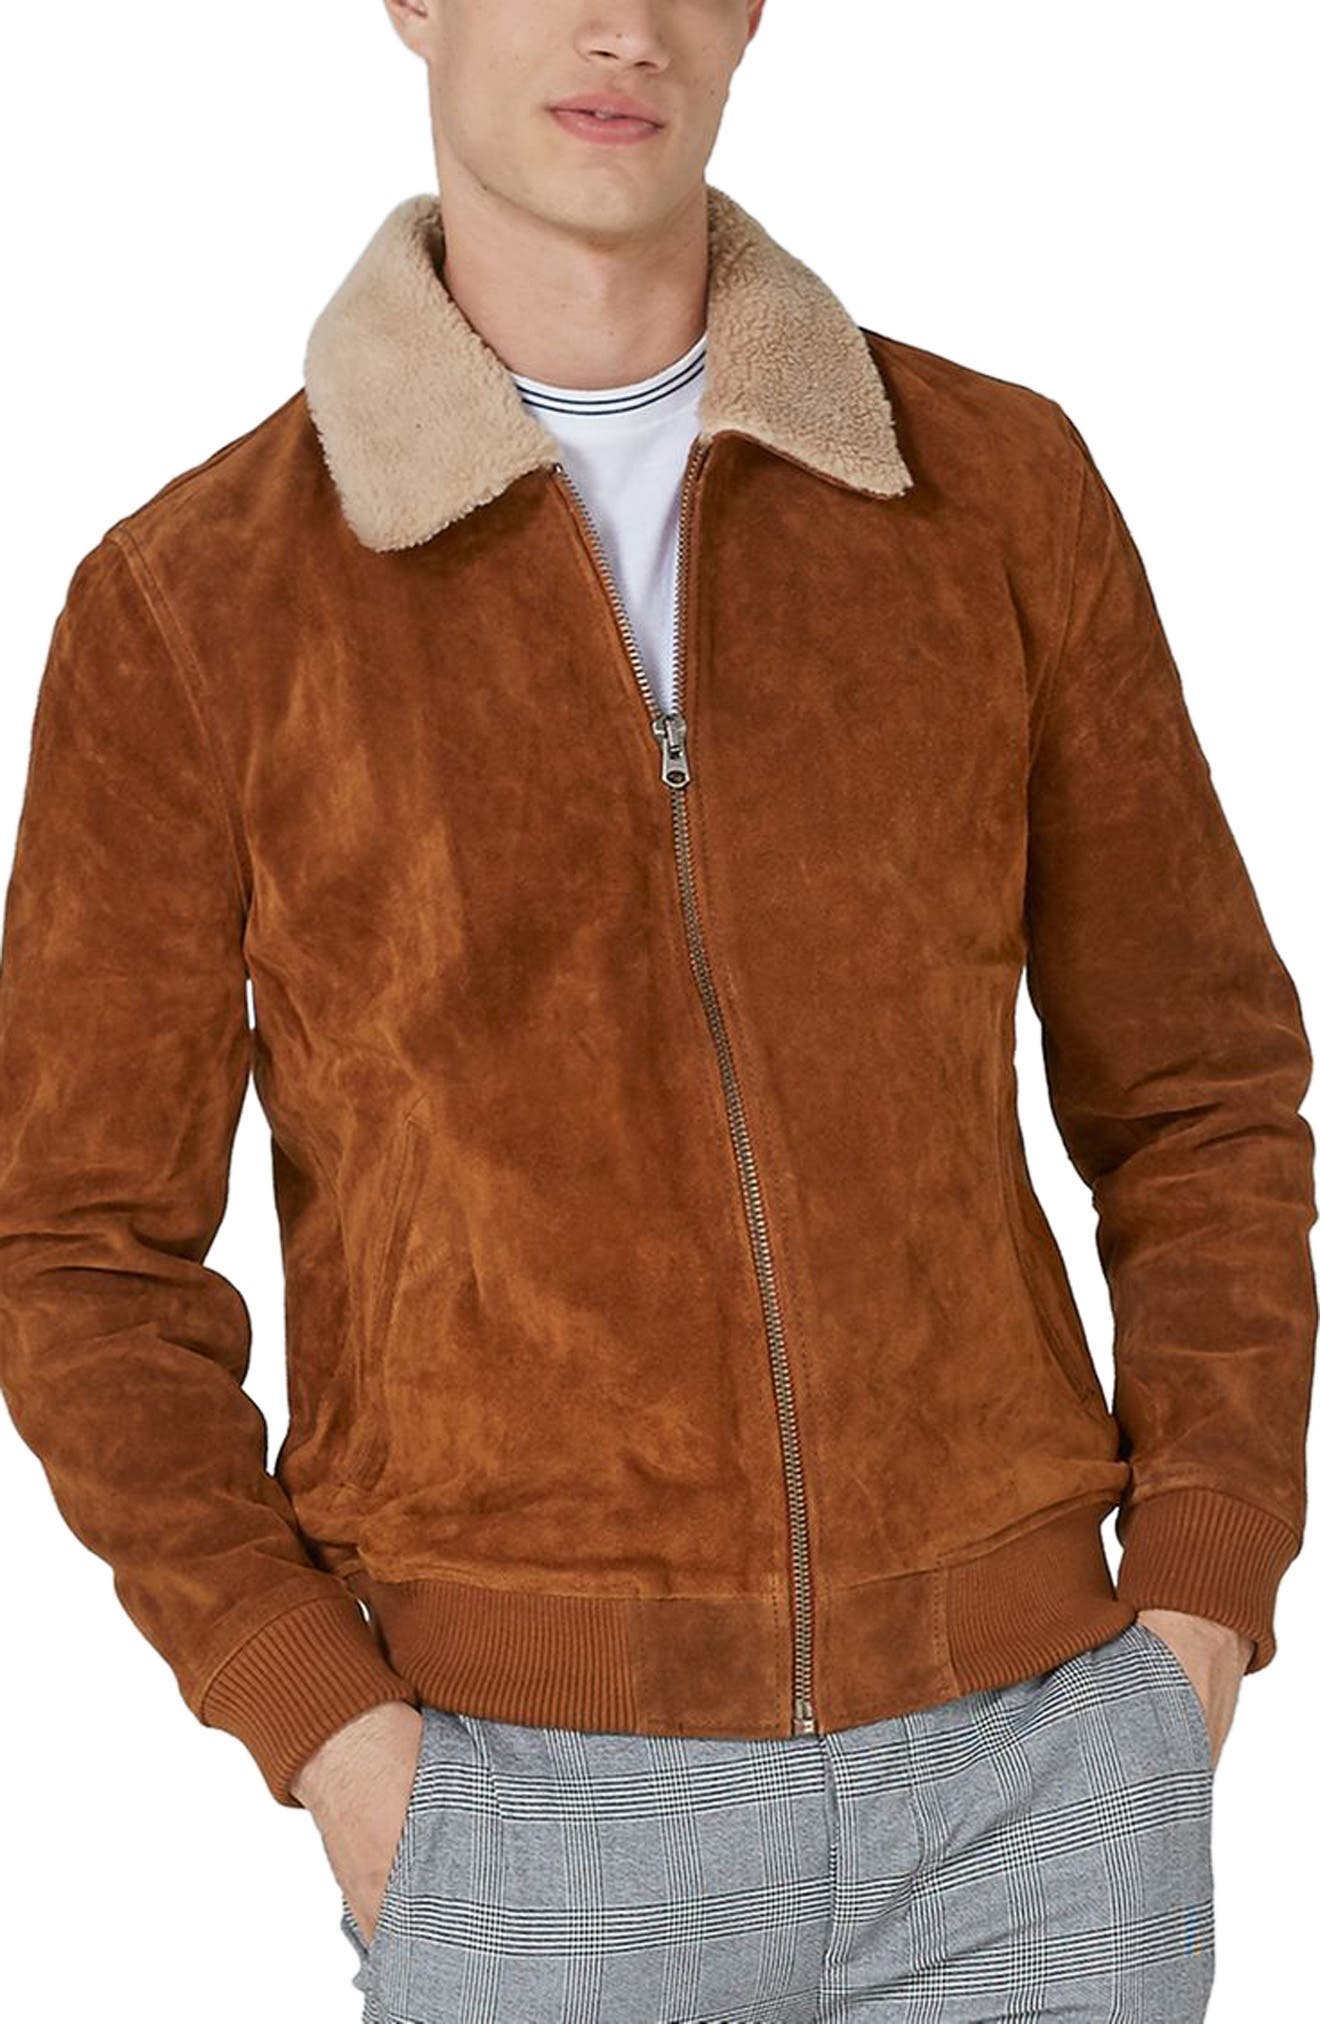 Borg Collar Suede Jacket,                         Main,                         color, 200